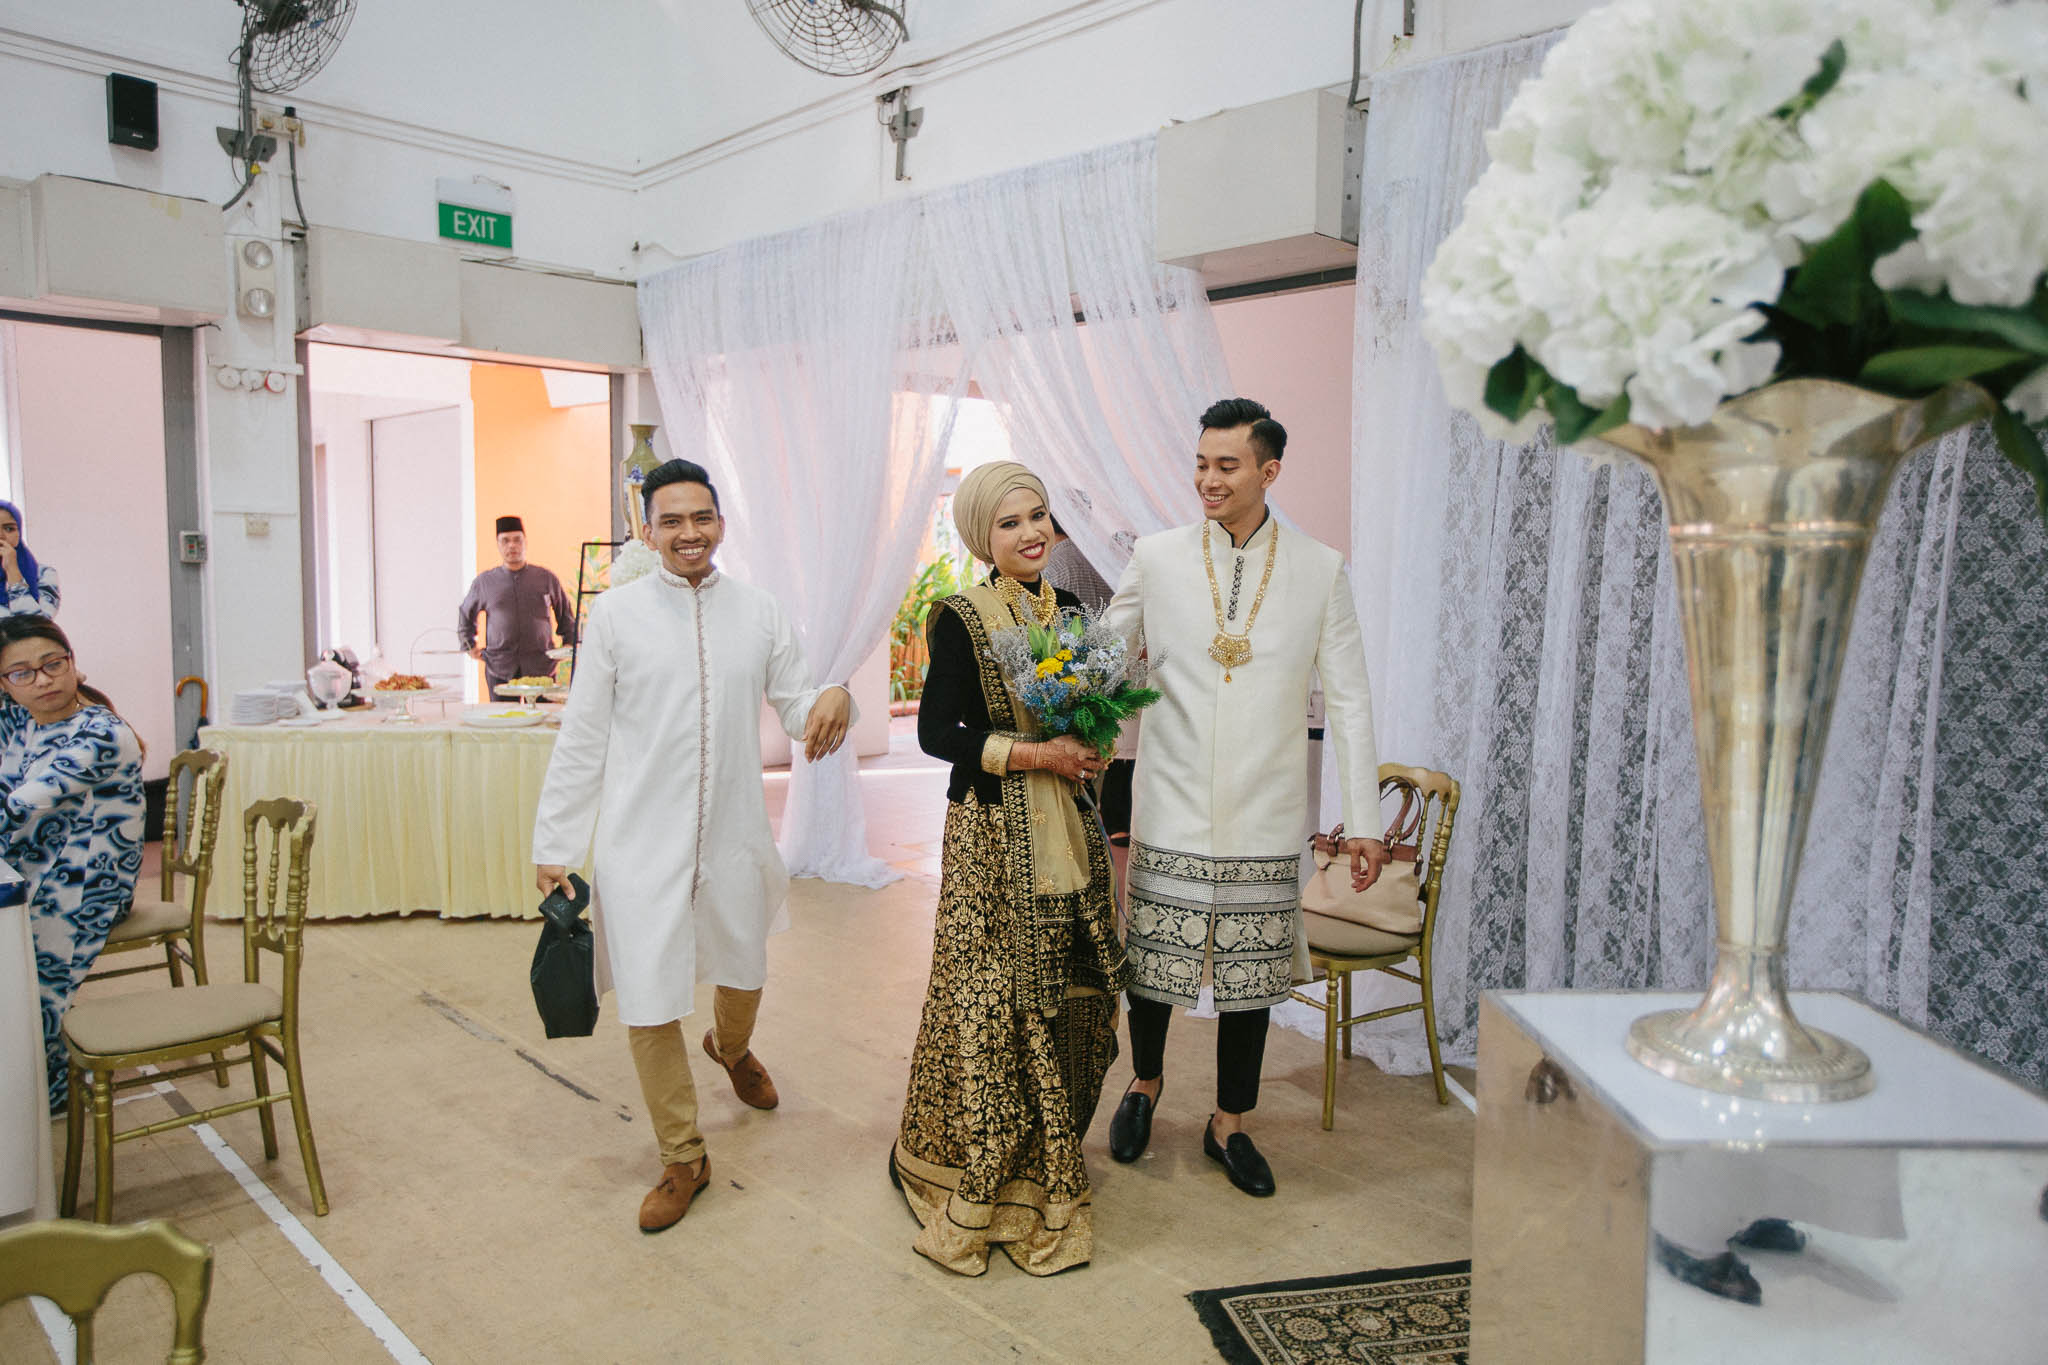 singapore-wedding-photographer-mega-asyraf-74.jpg